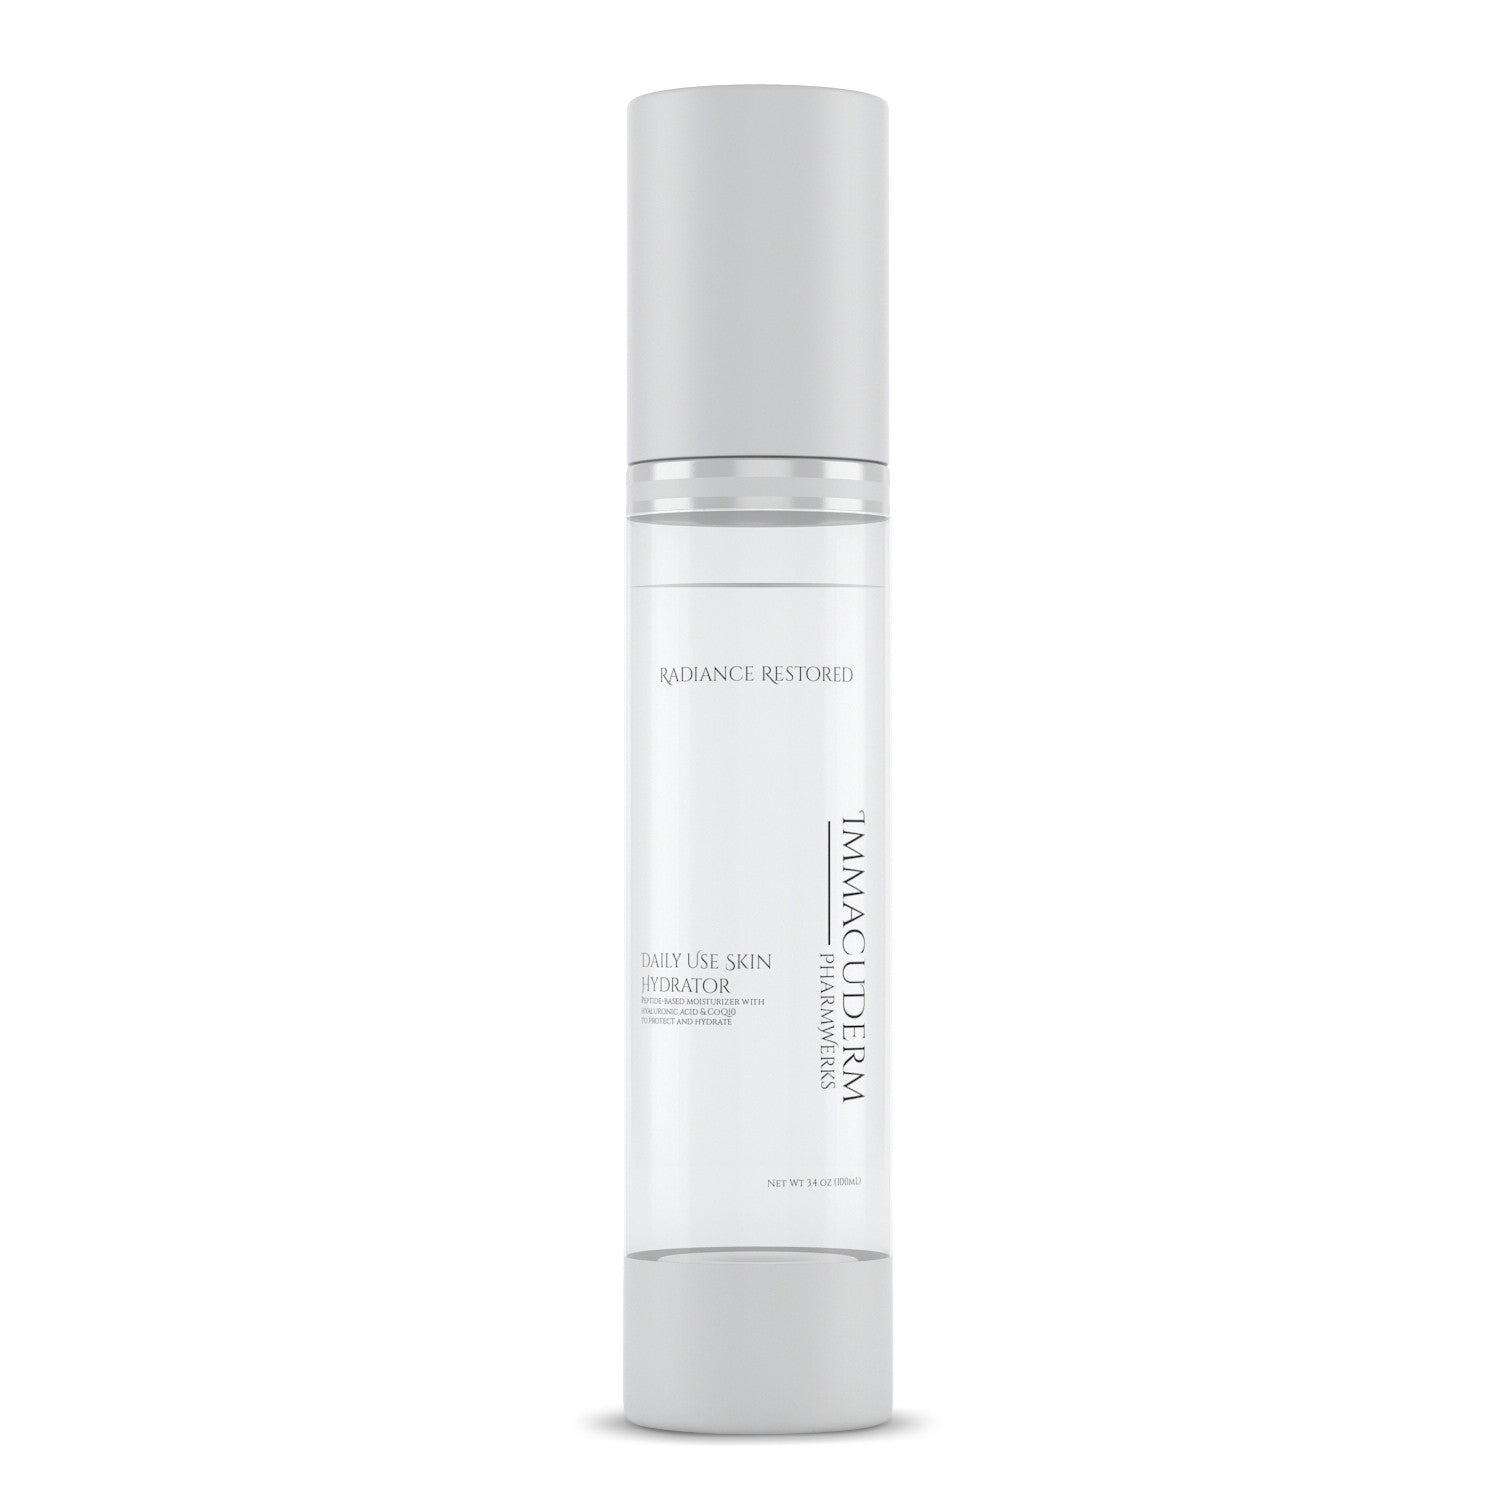 Daily Use Skin Hydrator, 50ml